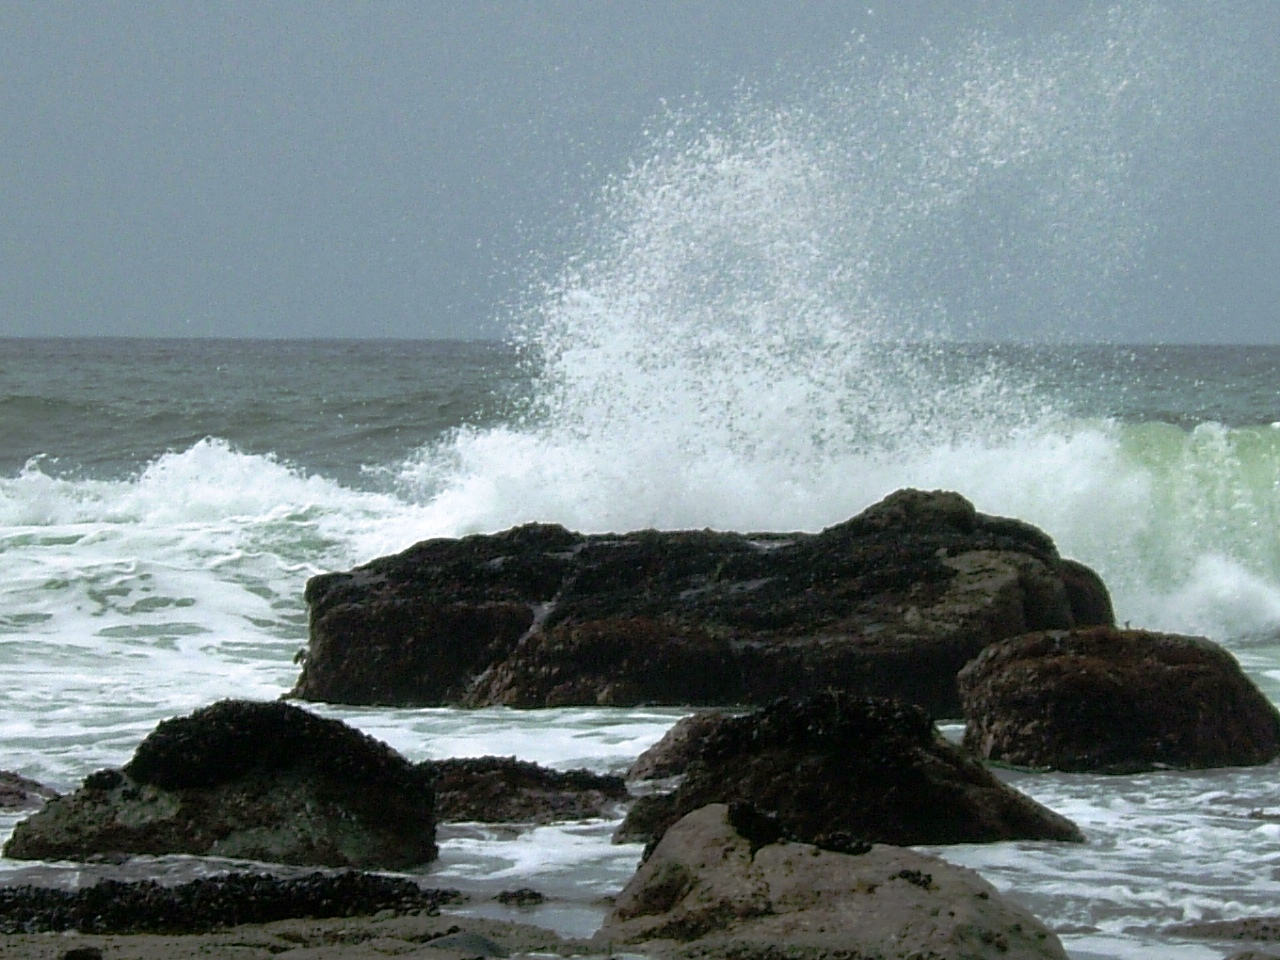 The Pacific Ocean at play